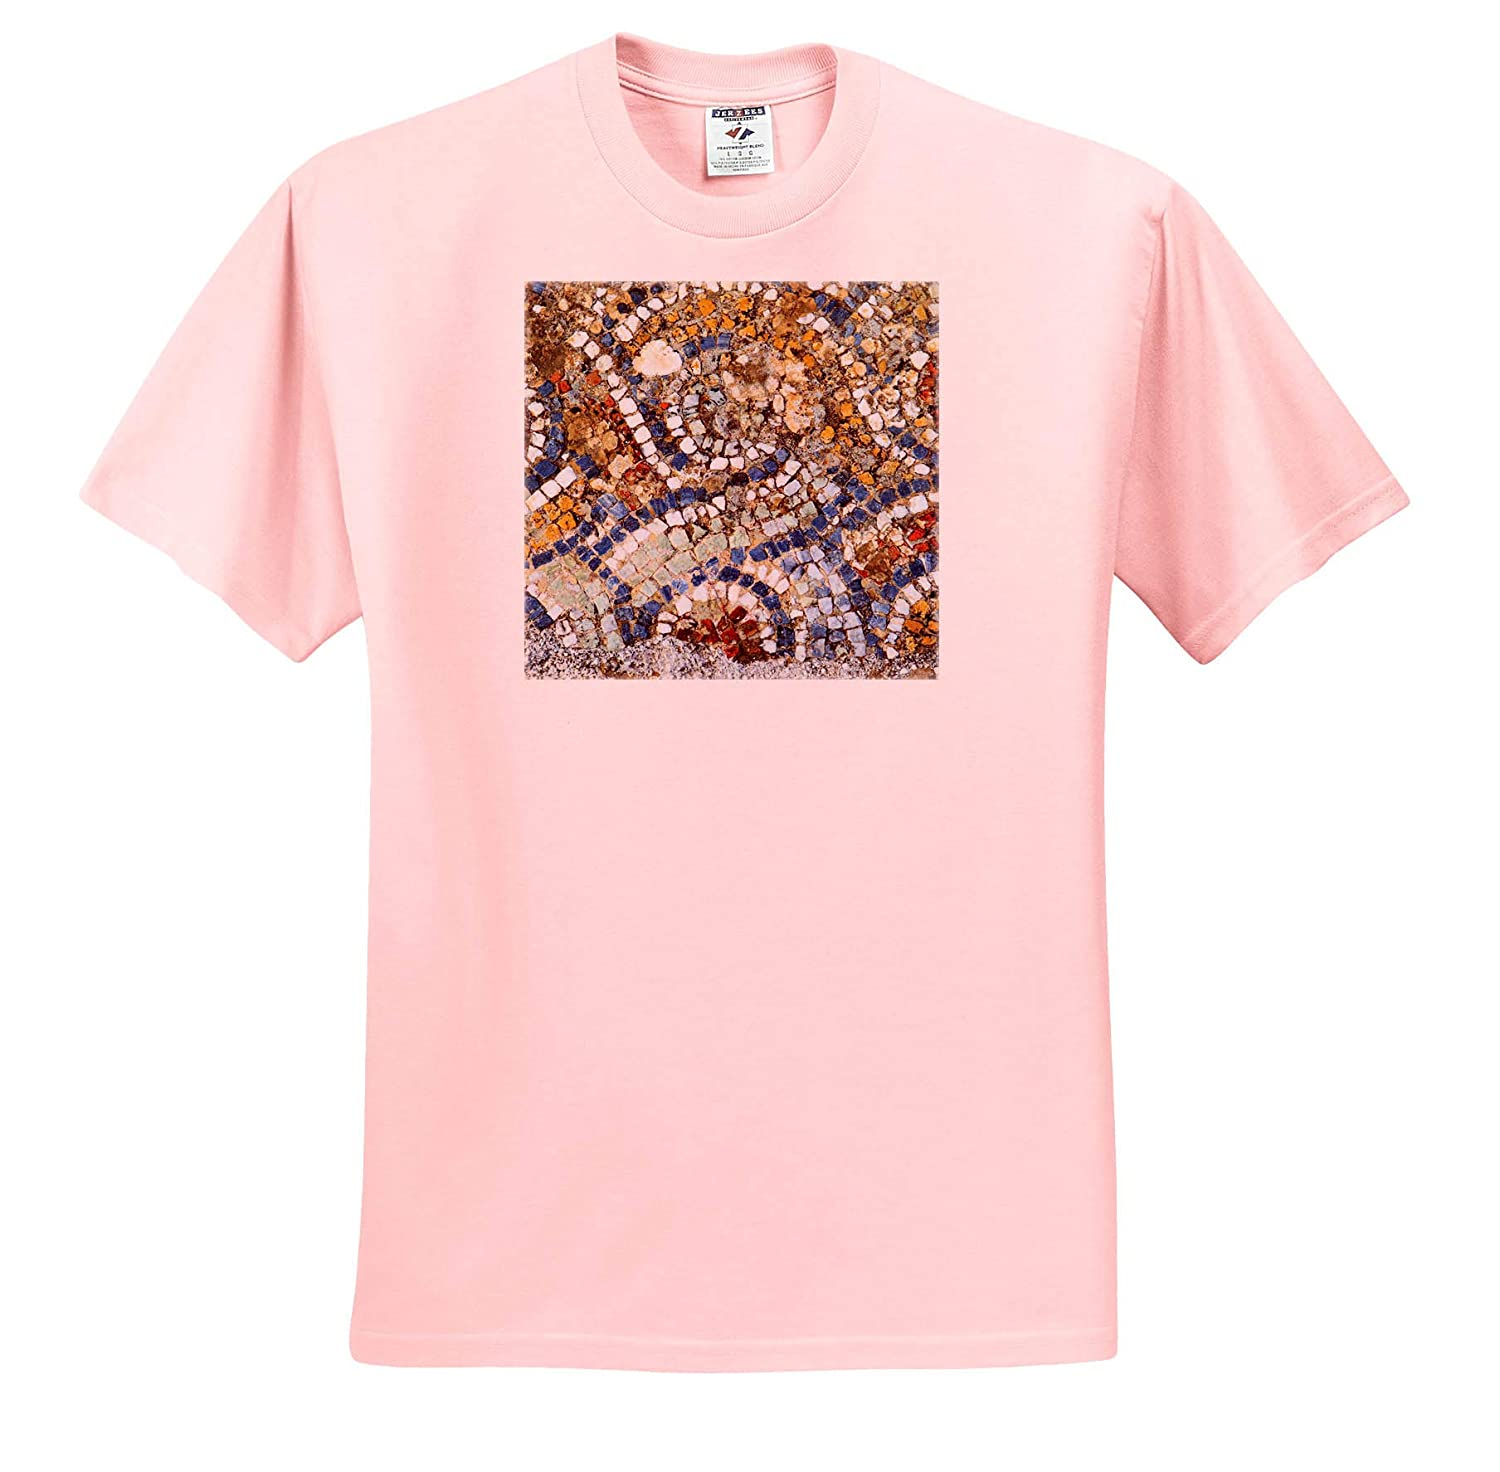 Selcuk ts/_312852 Ancient City Ephesus 3dRose Danita Delimont Turkey Abstracts - Adult T-Shirt XL Mosaic Floor